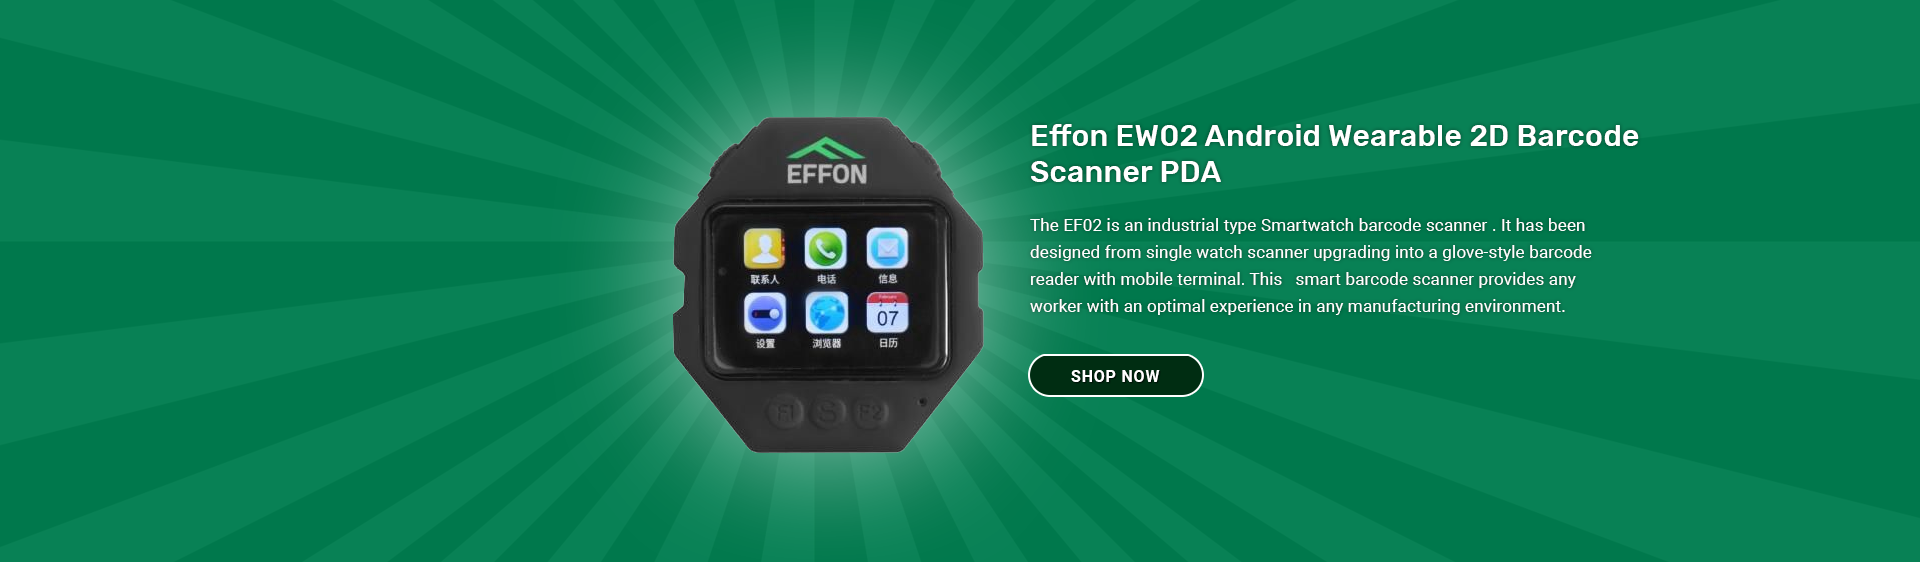 Effon EW02 Android ...